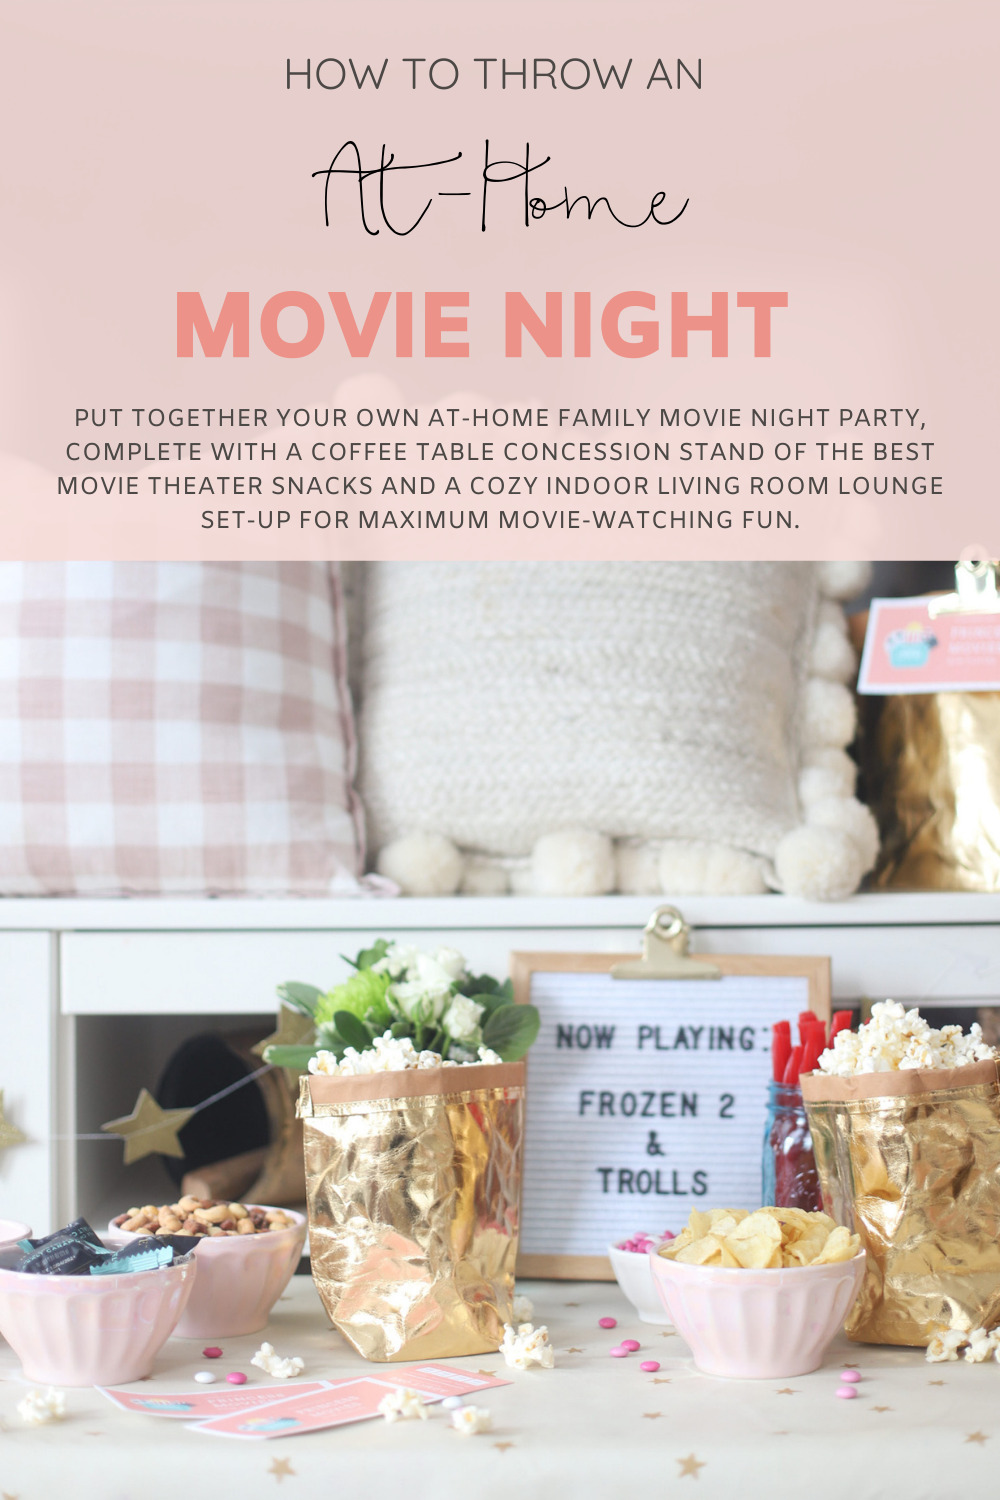 At-Home Family Movie Night Party | Building Our Own Cozy Indoor Living Room Theater | Movie Theater Snacks Concession Stand on the Coffee Table | Theatre Treat Board | @glitterinclexi | GLITTERINC.COM